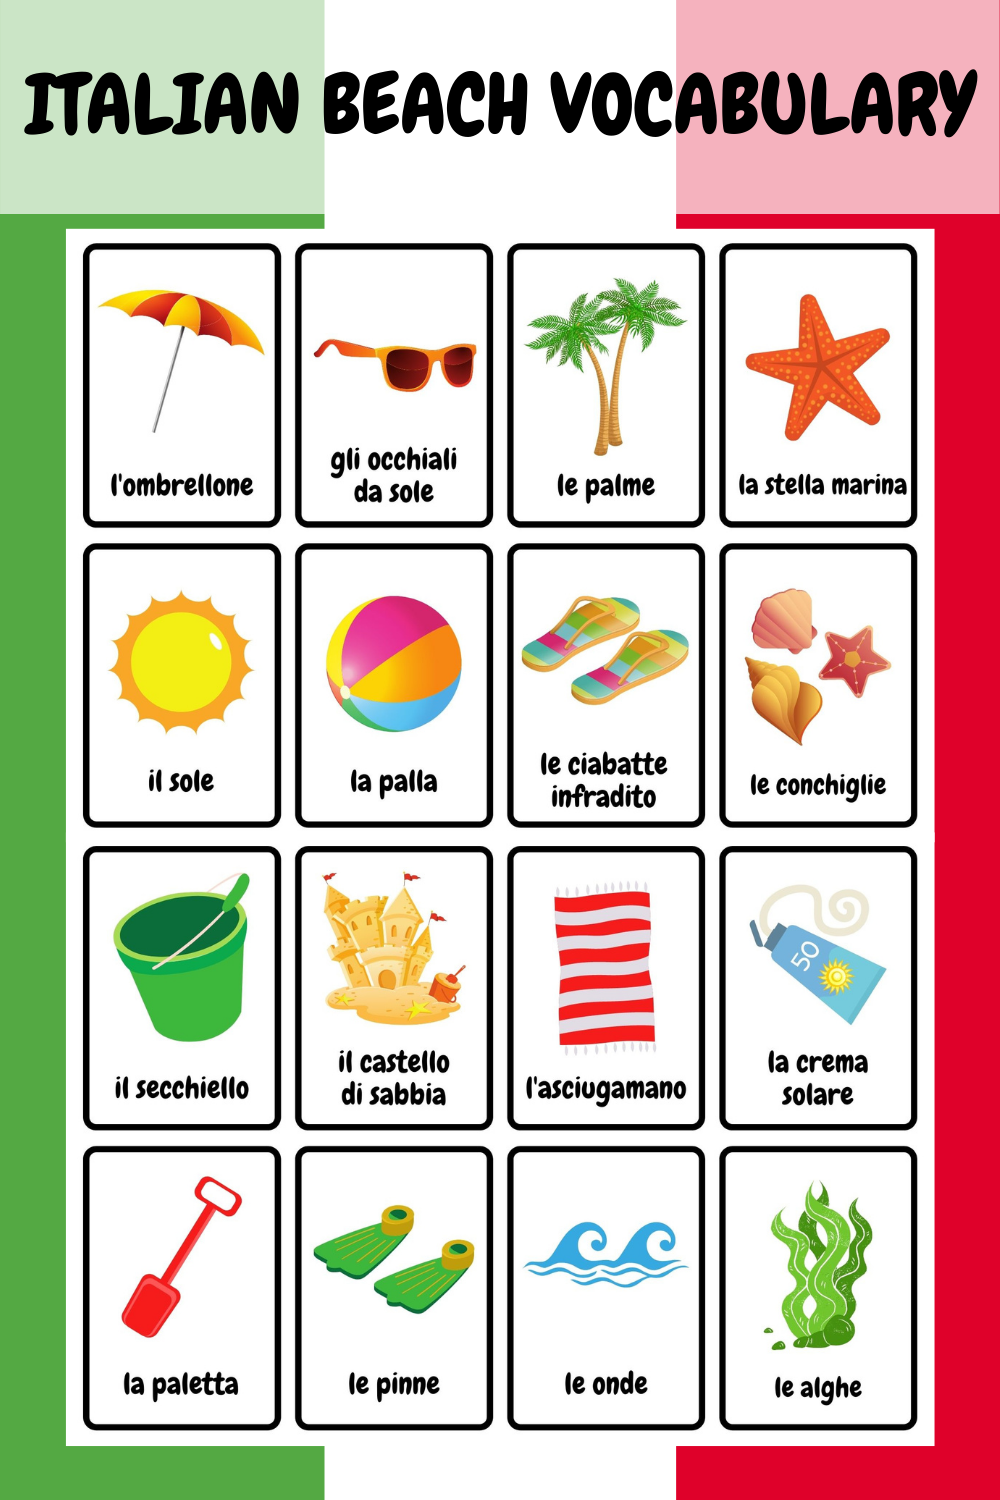 These Italian beach flashcards are great for kids and Italian beginners! -- Learn 32 words that you can use practice throughout the summer during your visits to the beach. -- Great for homeschooling in Italian or for extra practice. -- Lots of more Italian flashcards available in my Etsy shop! -- #happymaplelanguageco #etsy #flashcards #etsyfinds #learnitalian #homeschooling #italianforkids #italian #italianlanguage #teacher #education #etsyshop